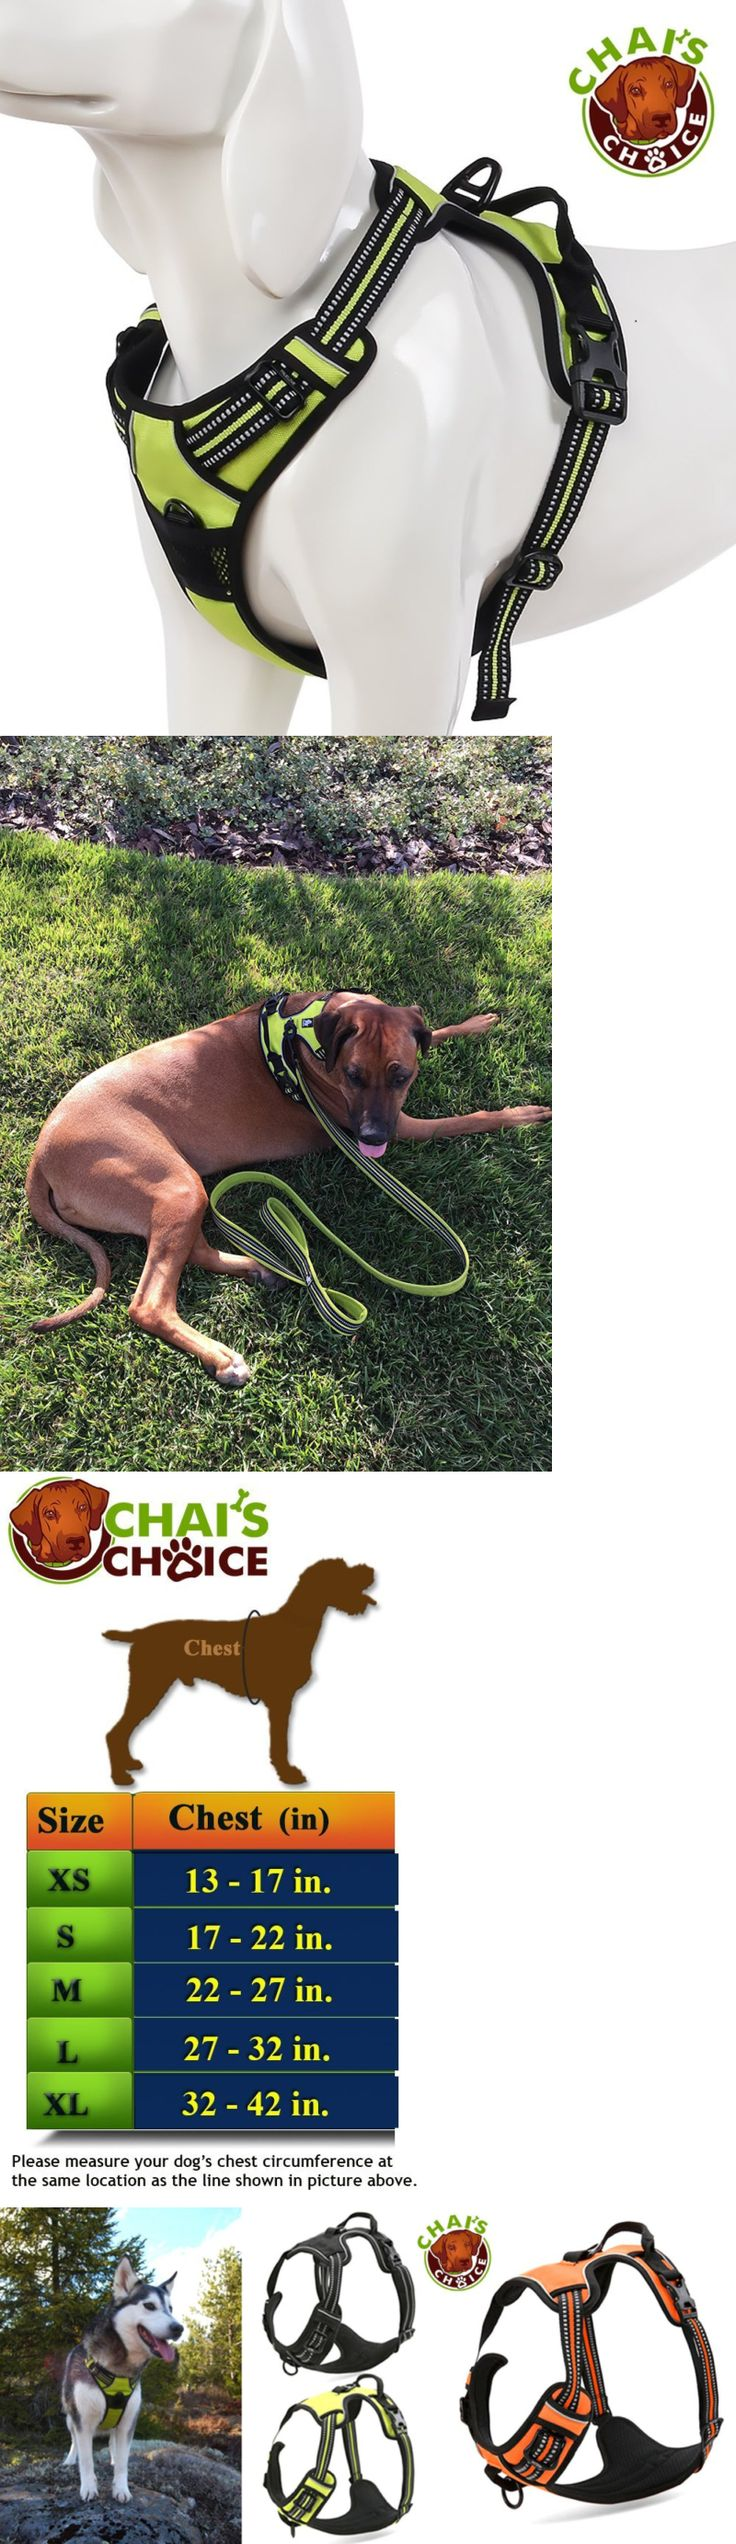 Harnesses 66783: Chai'S Choice Best Front Range Dog Harness. 3M Reflective Outdoor Adventu BUY IT NOW ONLY: $32.2